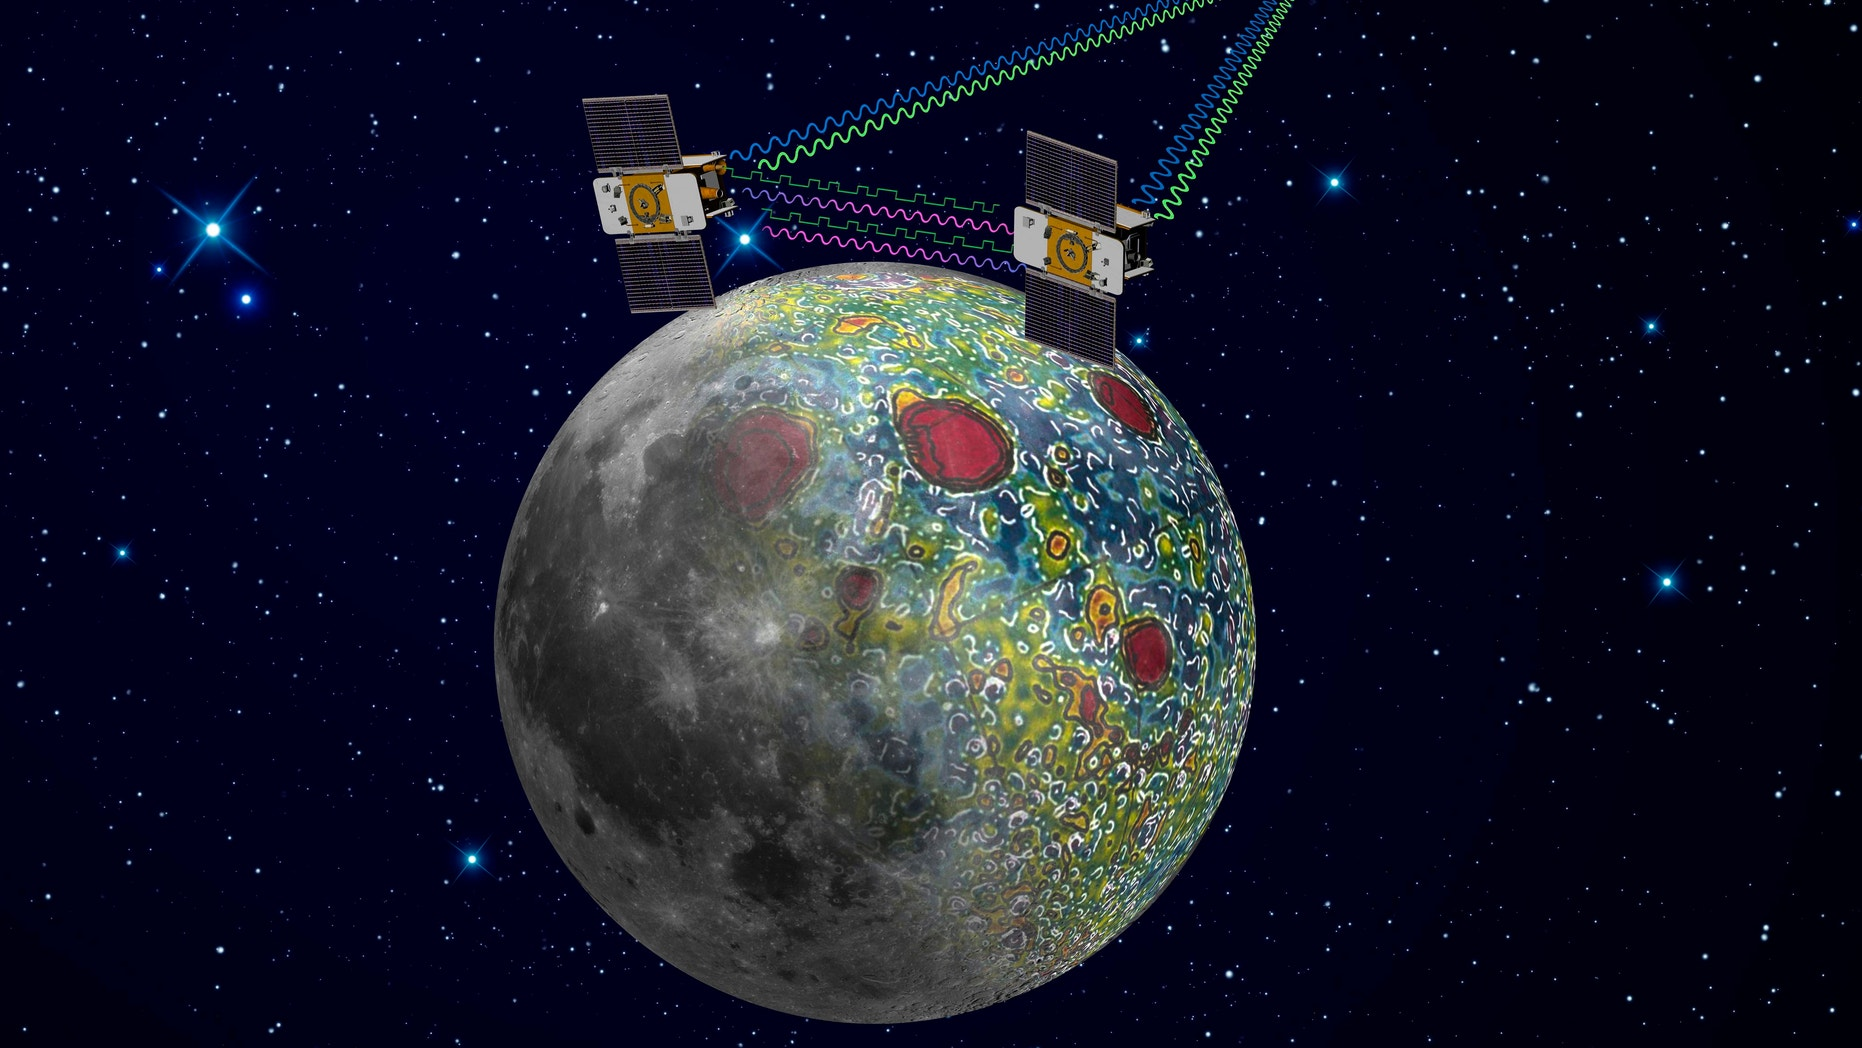 The twin Grail spacecraft mapping the lunar gravity field.